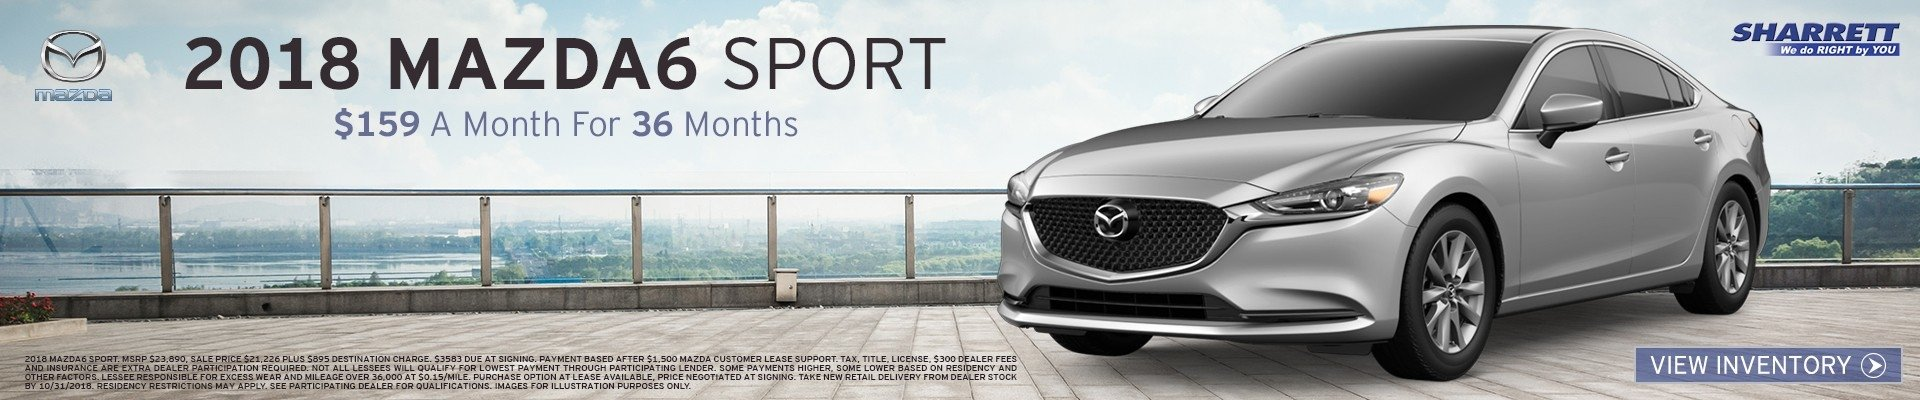 Lease a 2018 Mazda6 Sport for $159/mo for 36 mos